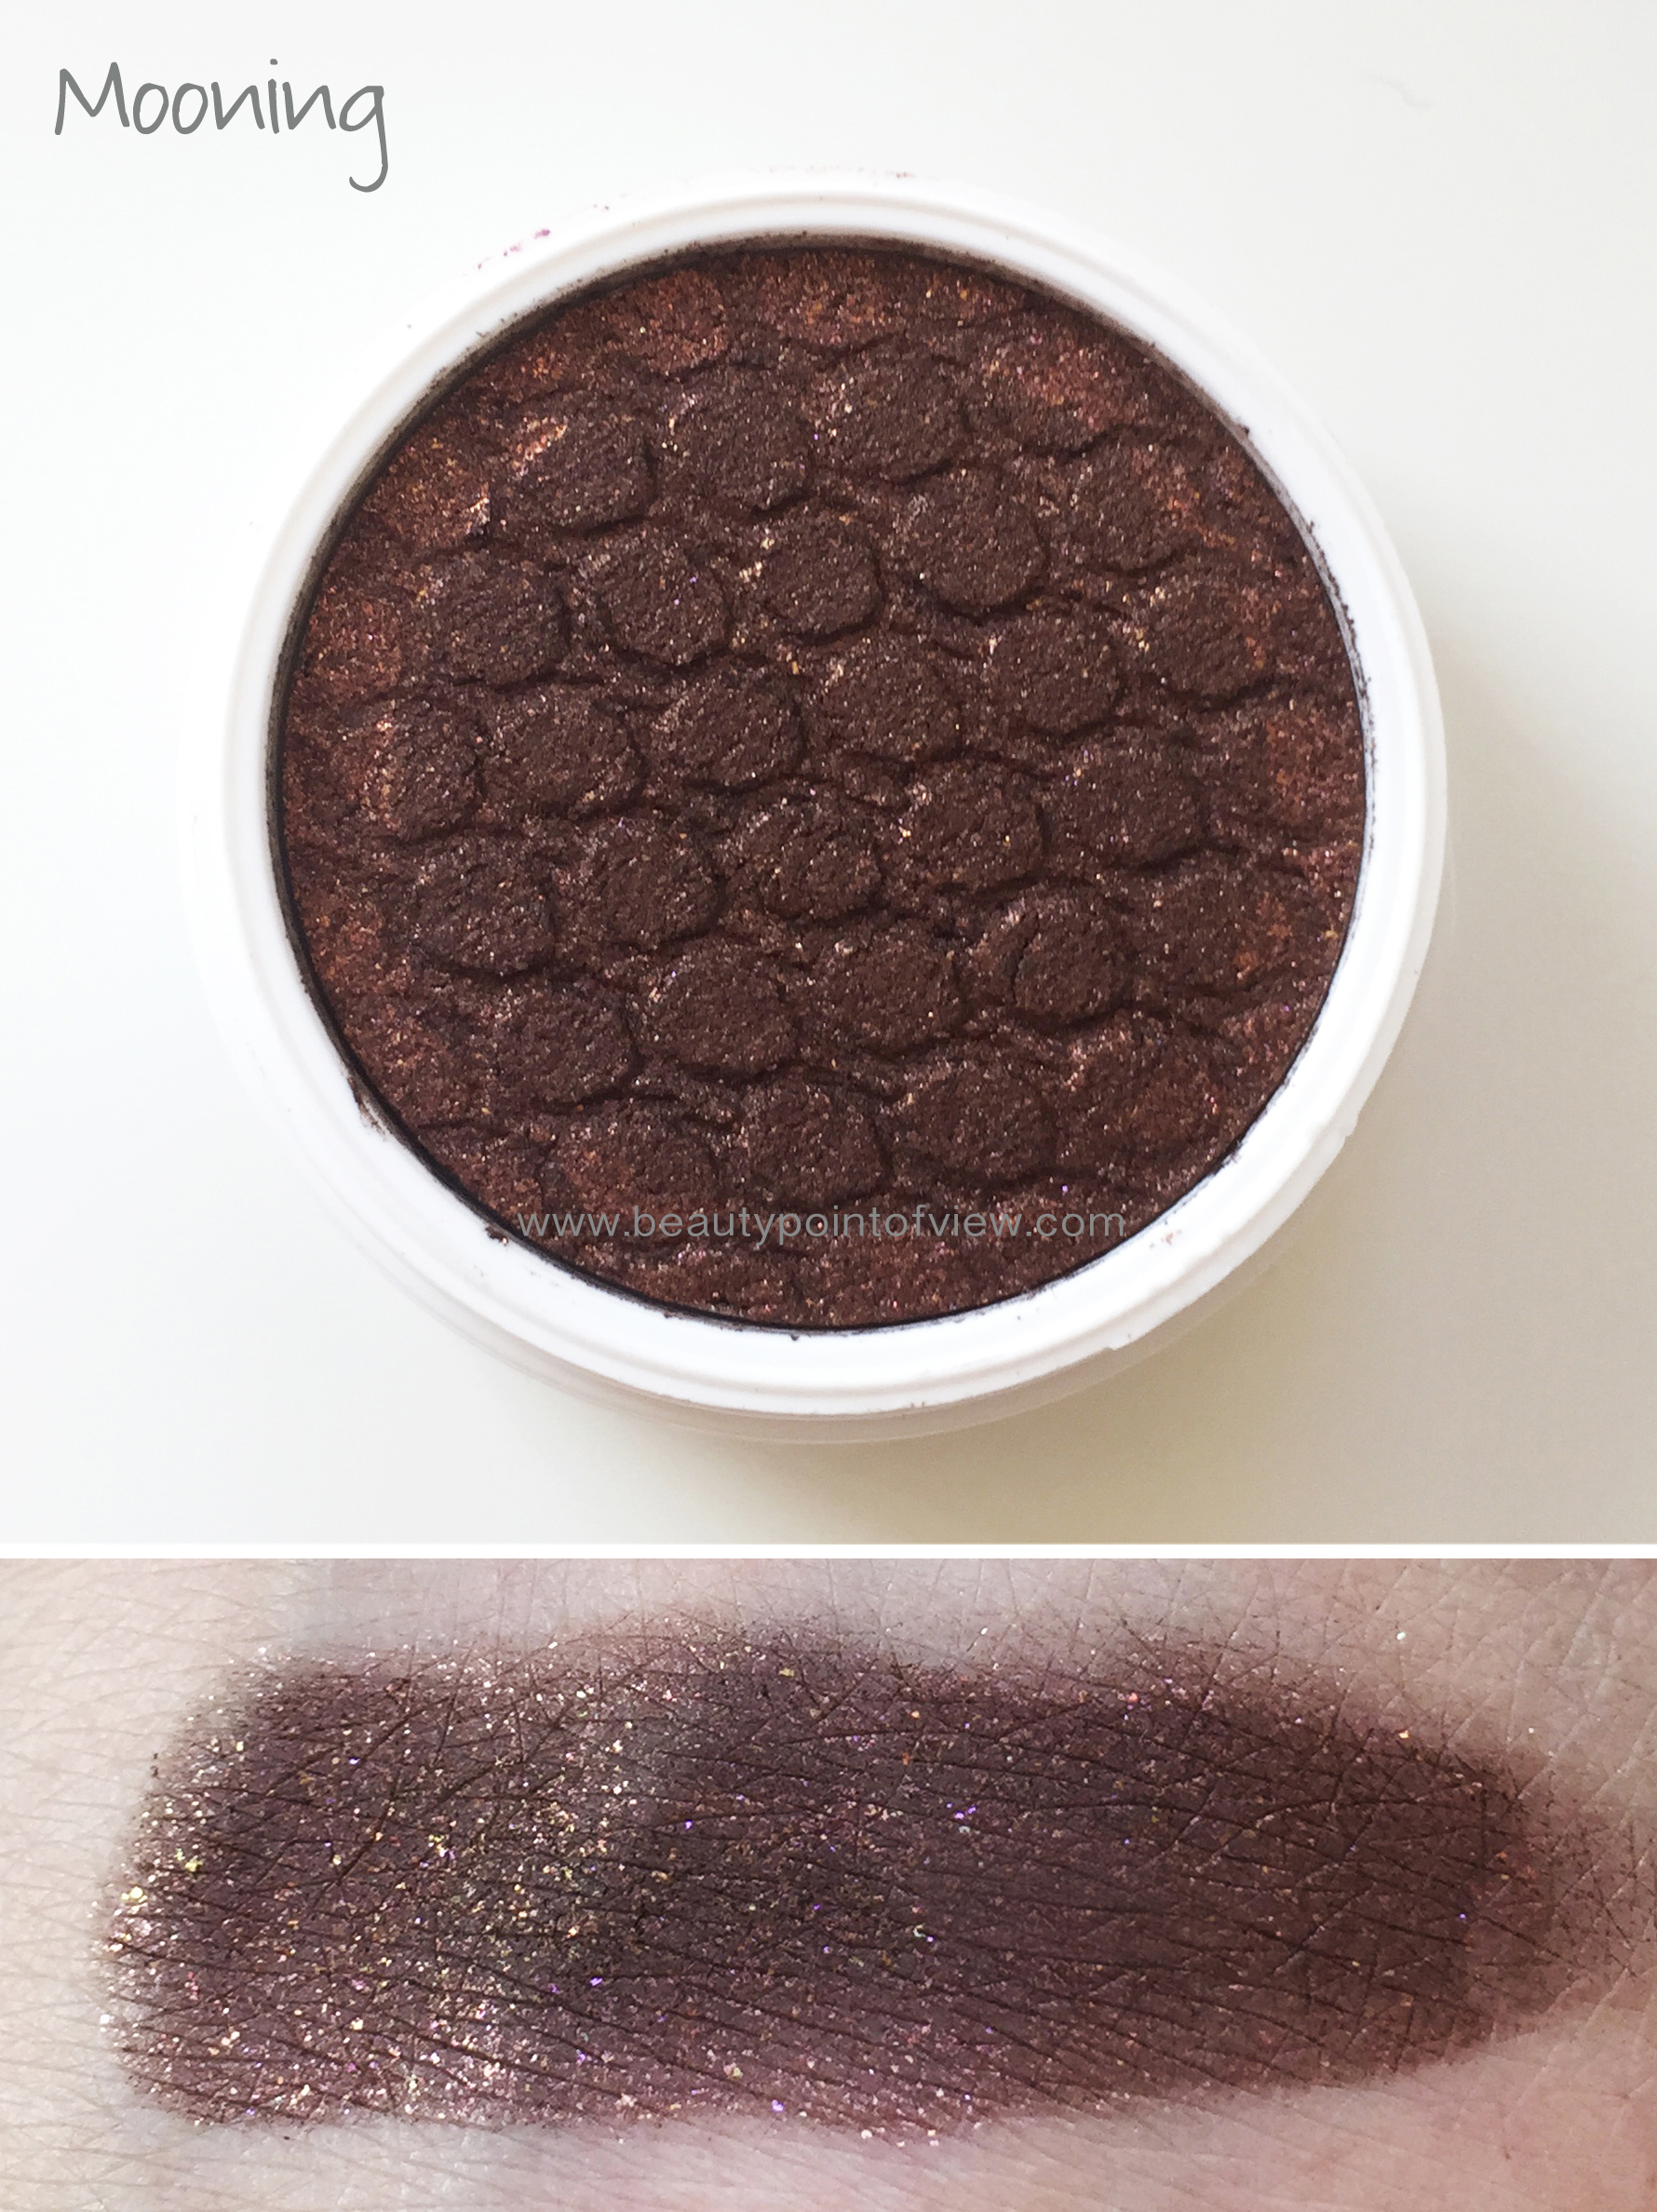 Colourpop Super Shock Eyeshadows - Mooning